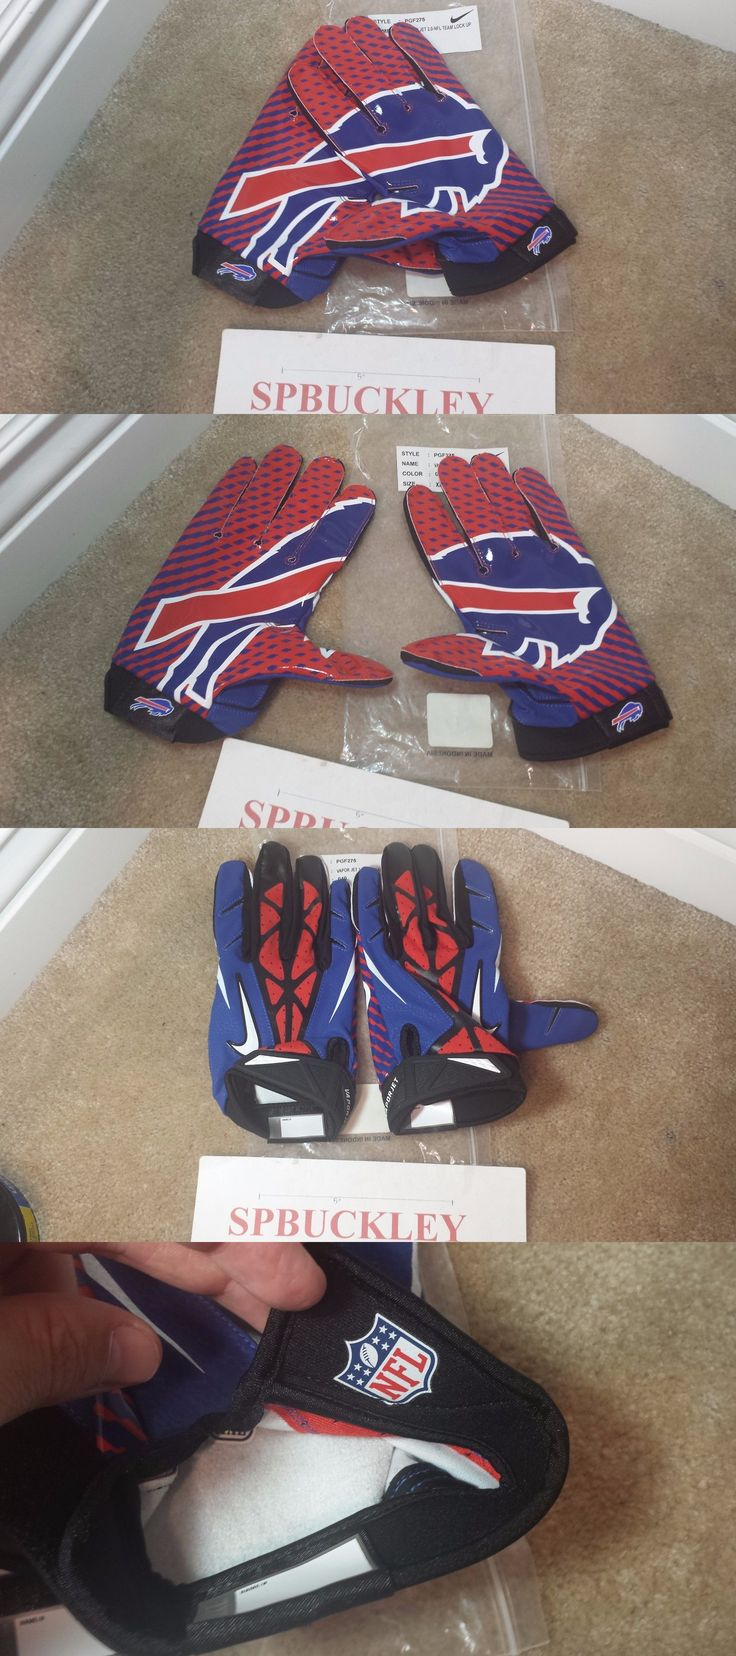 Gloves 159114: Nike Vapor Jet 2.0 Lock Up Nfl Buffalo Bills Xxl Receivers Football Gloves, Nwt -> BUY IT NOW ONLY: $59.99 on eBay!